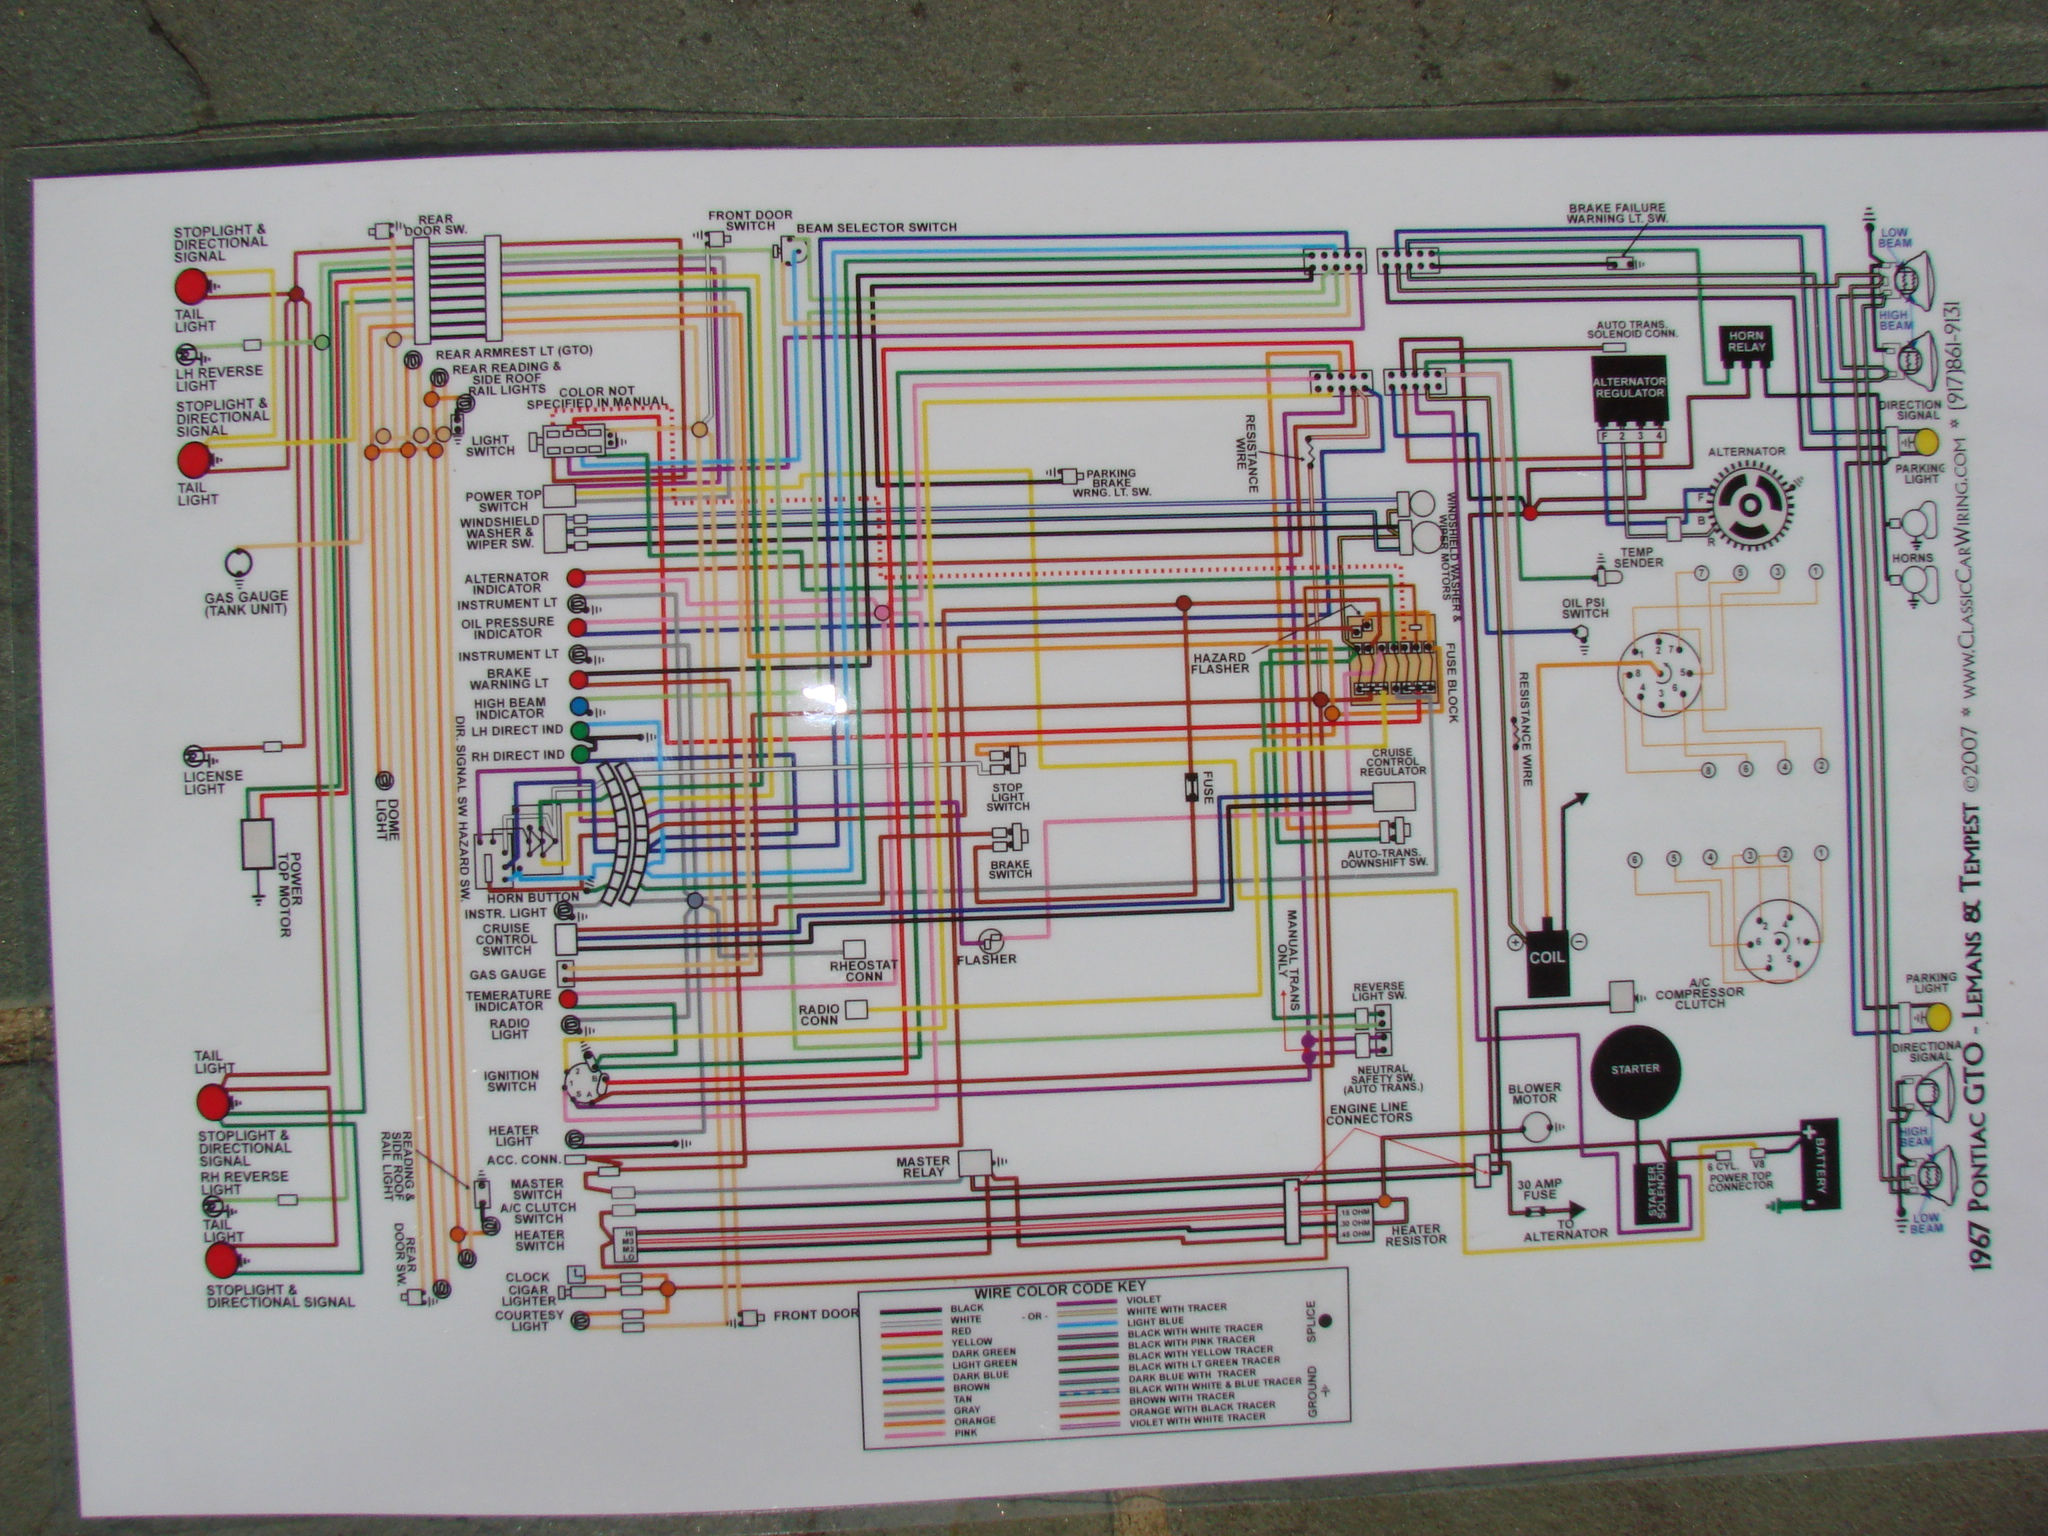 1970 Pontiac Gto Wiring Schematic Archive Of Automotive Harness Diagram Dash Opinions About U2022 Rh Voterid Co Ignition